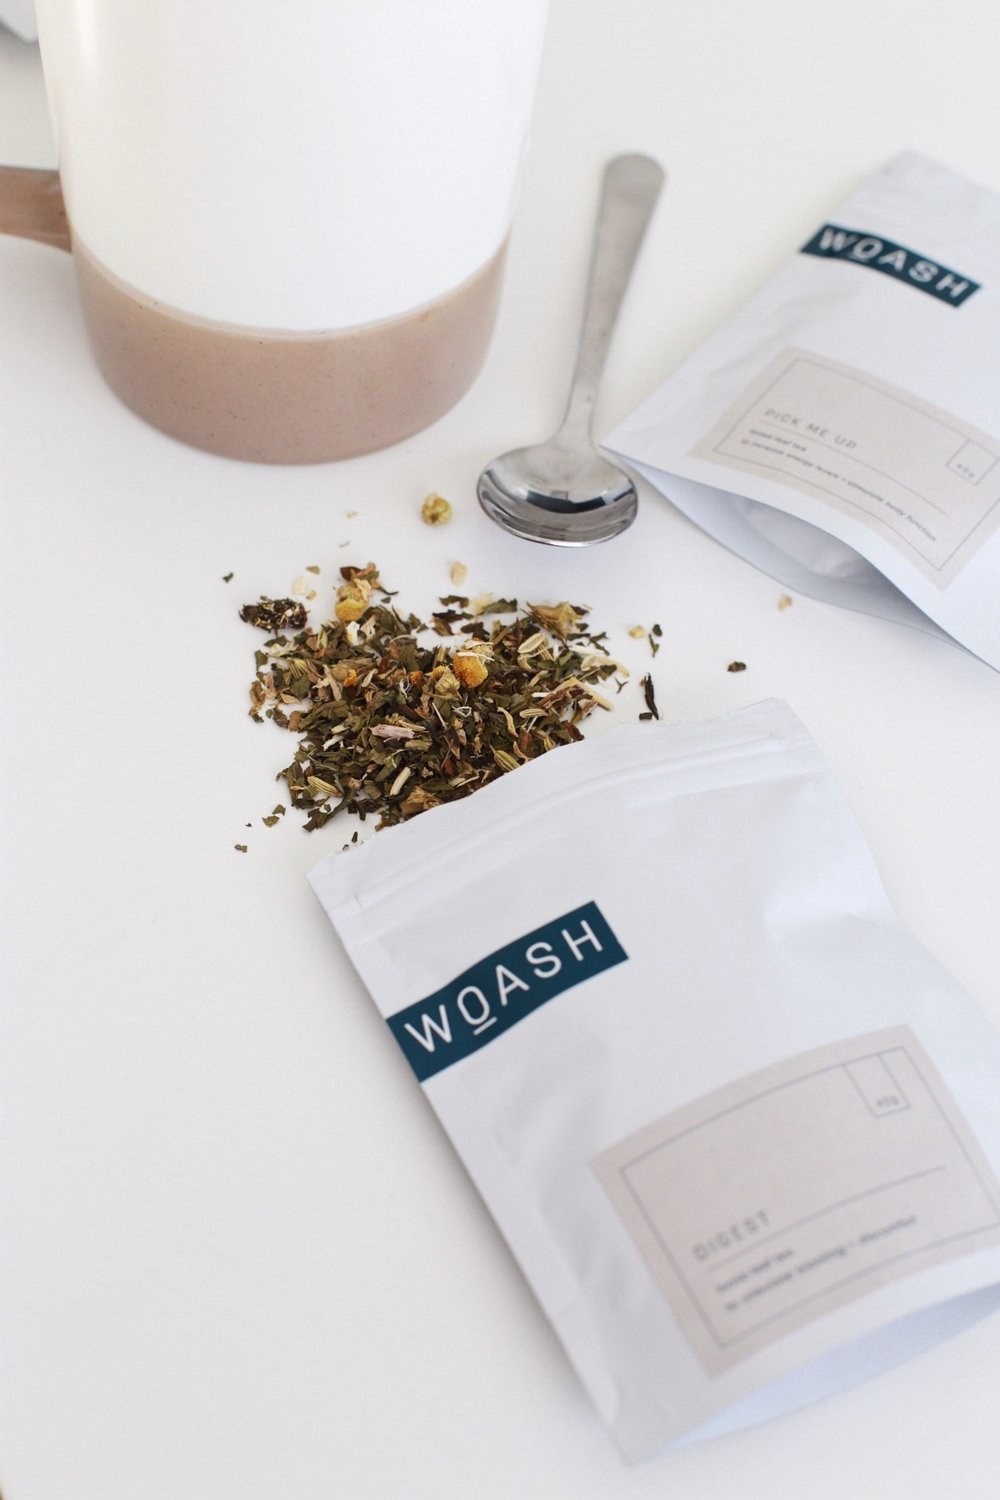 Photo of the white packaging with blue logo designed for Woash Wellness with tea spilling out of the bag next to a metal spoon.